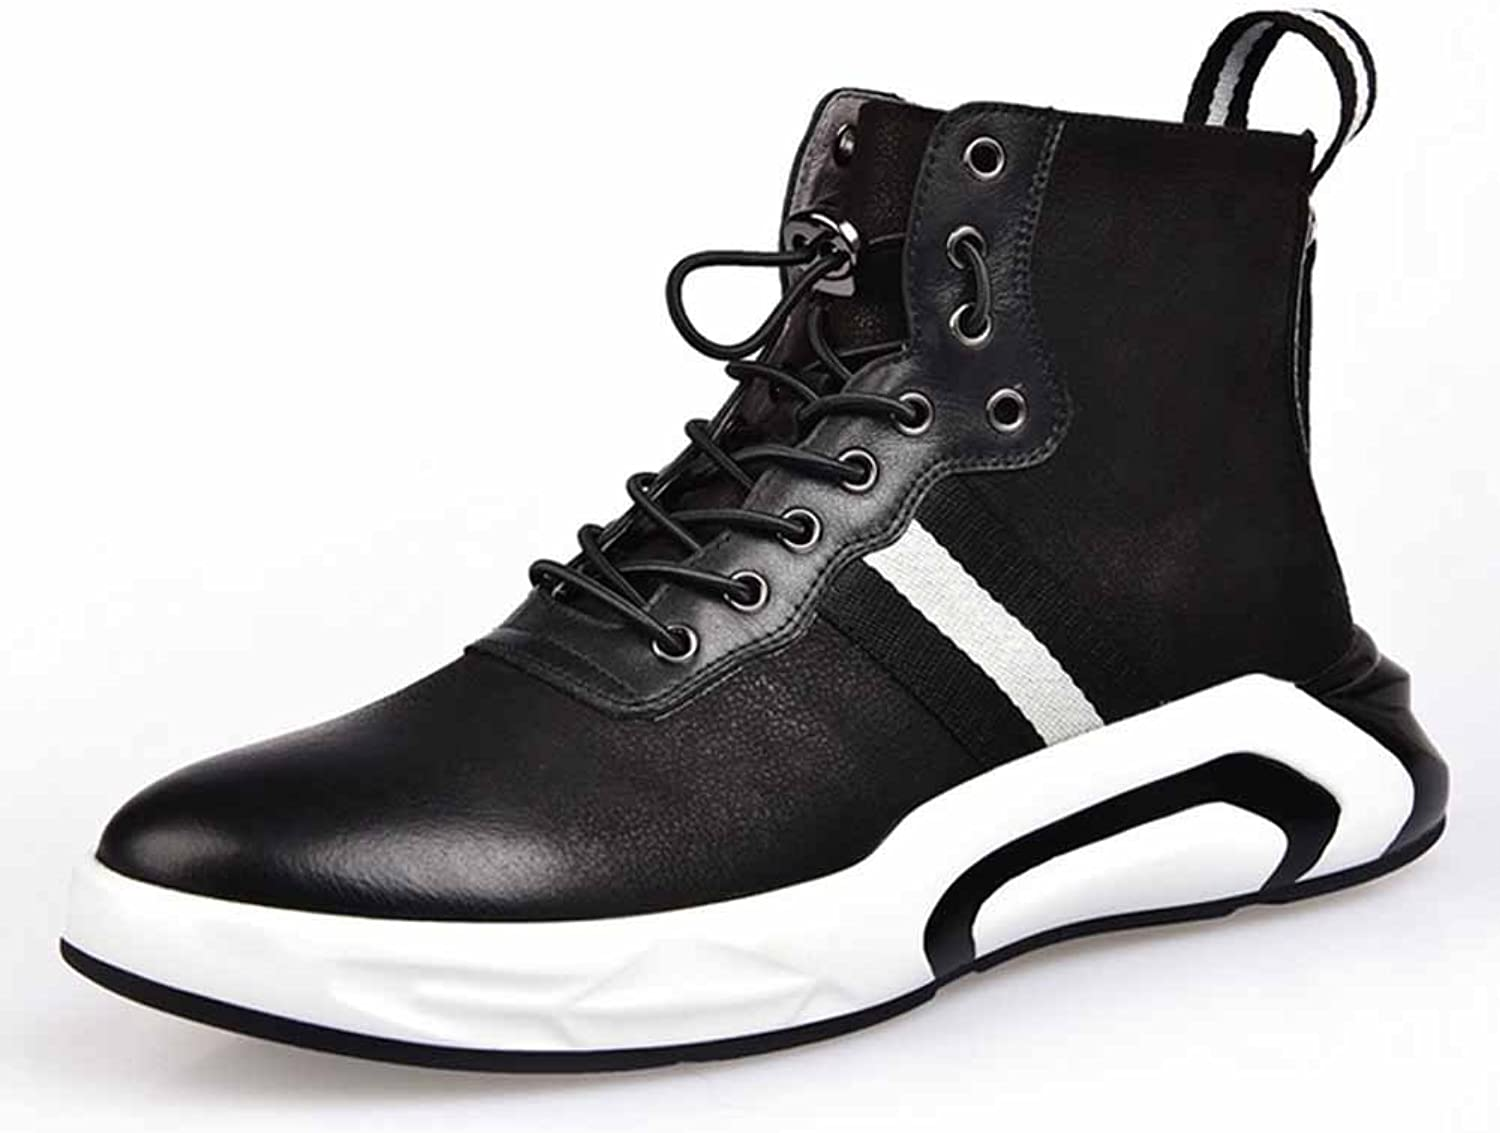 GLSHI Men Leather Sneakers New Hi-Top Walking shoes Lightweight Outdoor Travel shoes